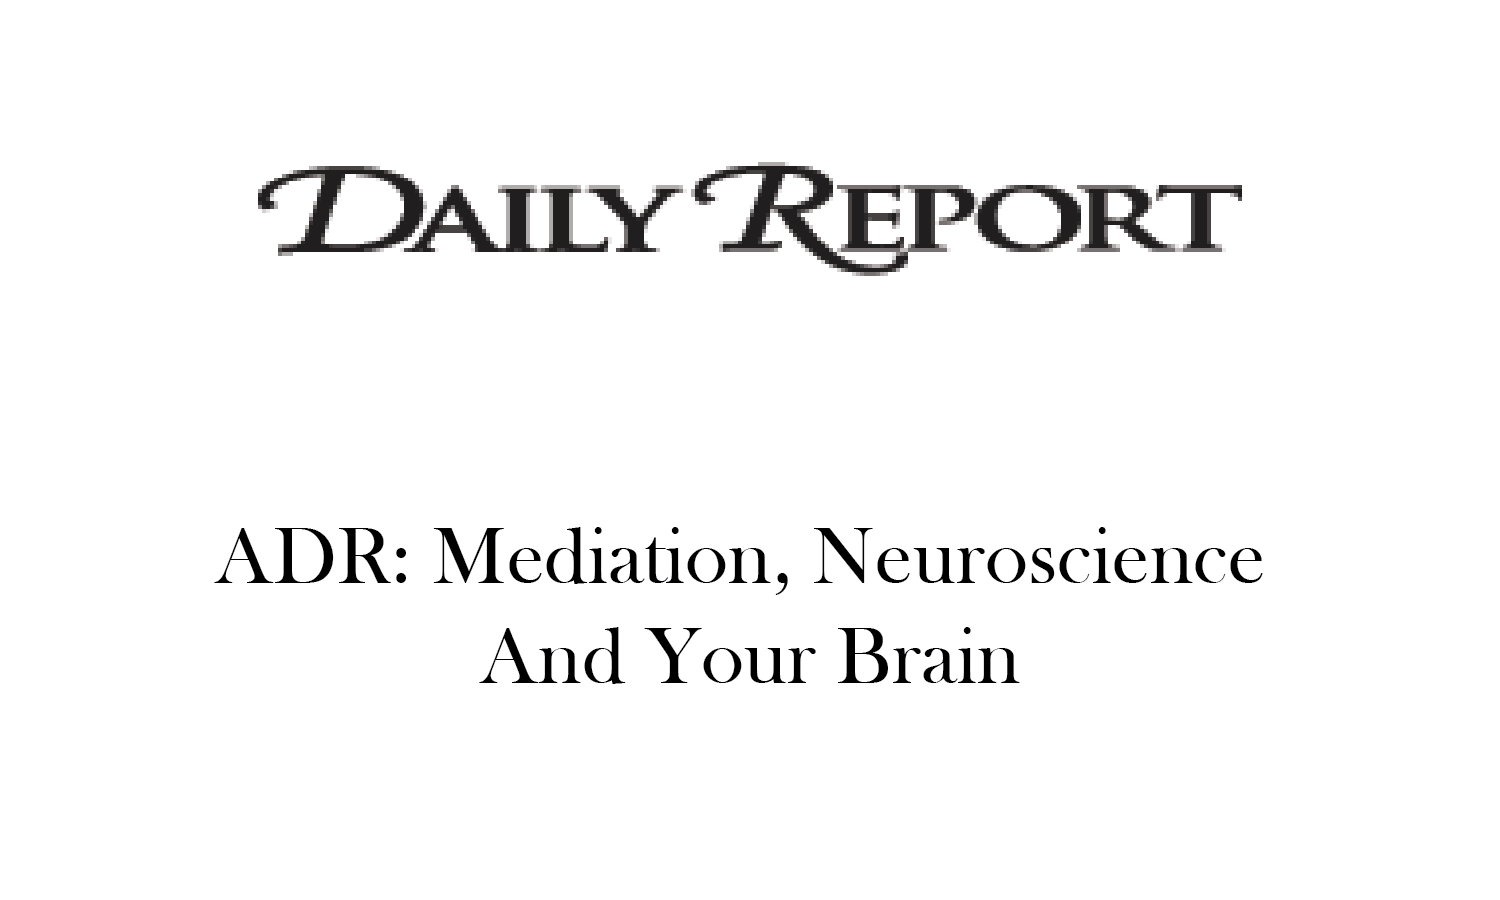 Work-thumbnails_misc-Mediation, Neuroscience and Your Brain.png